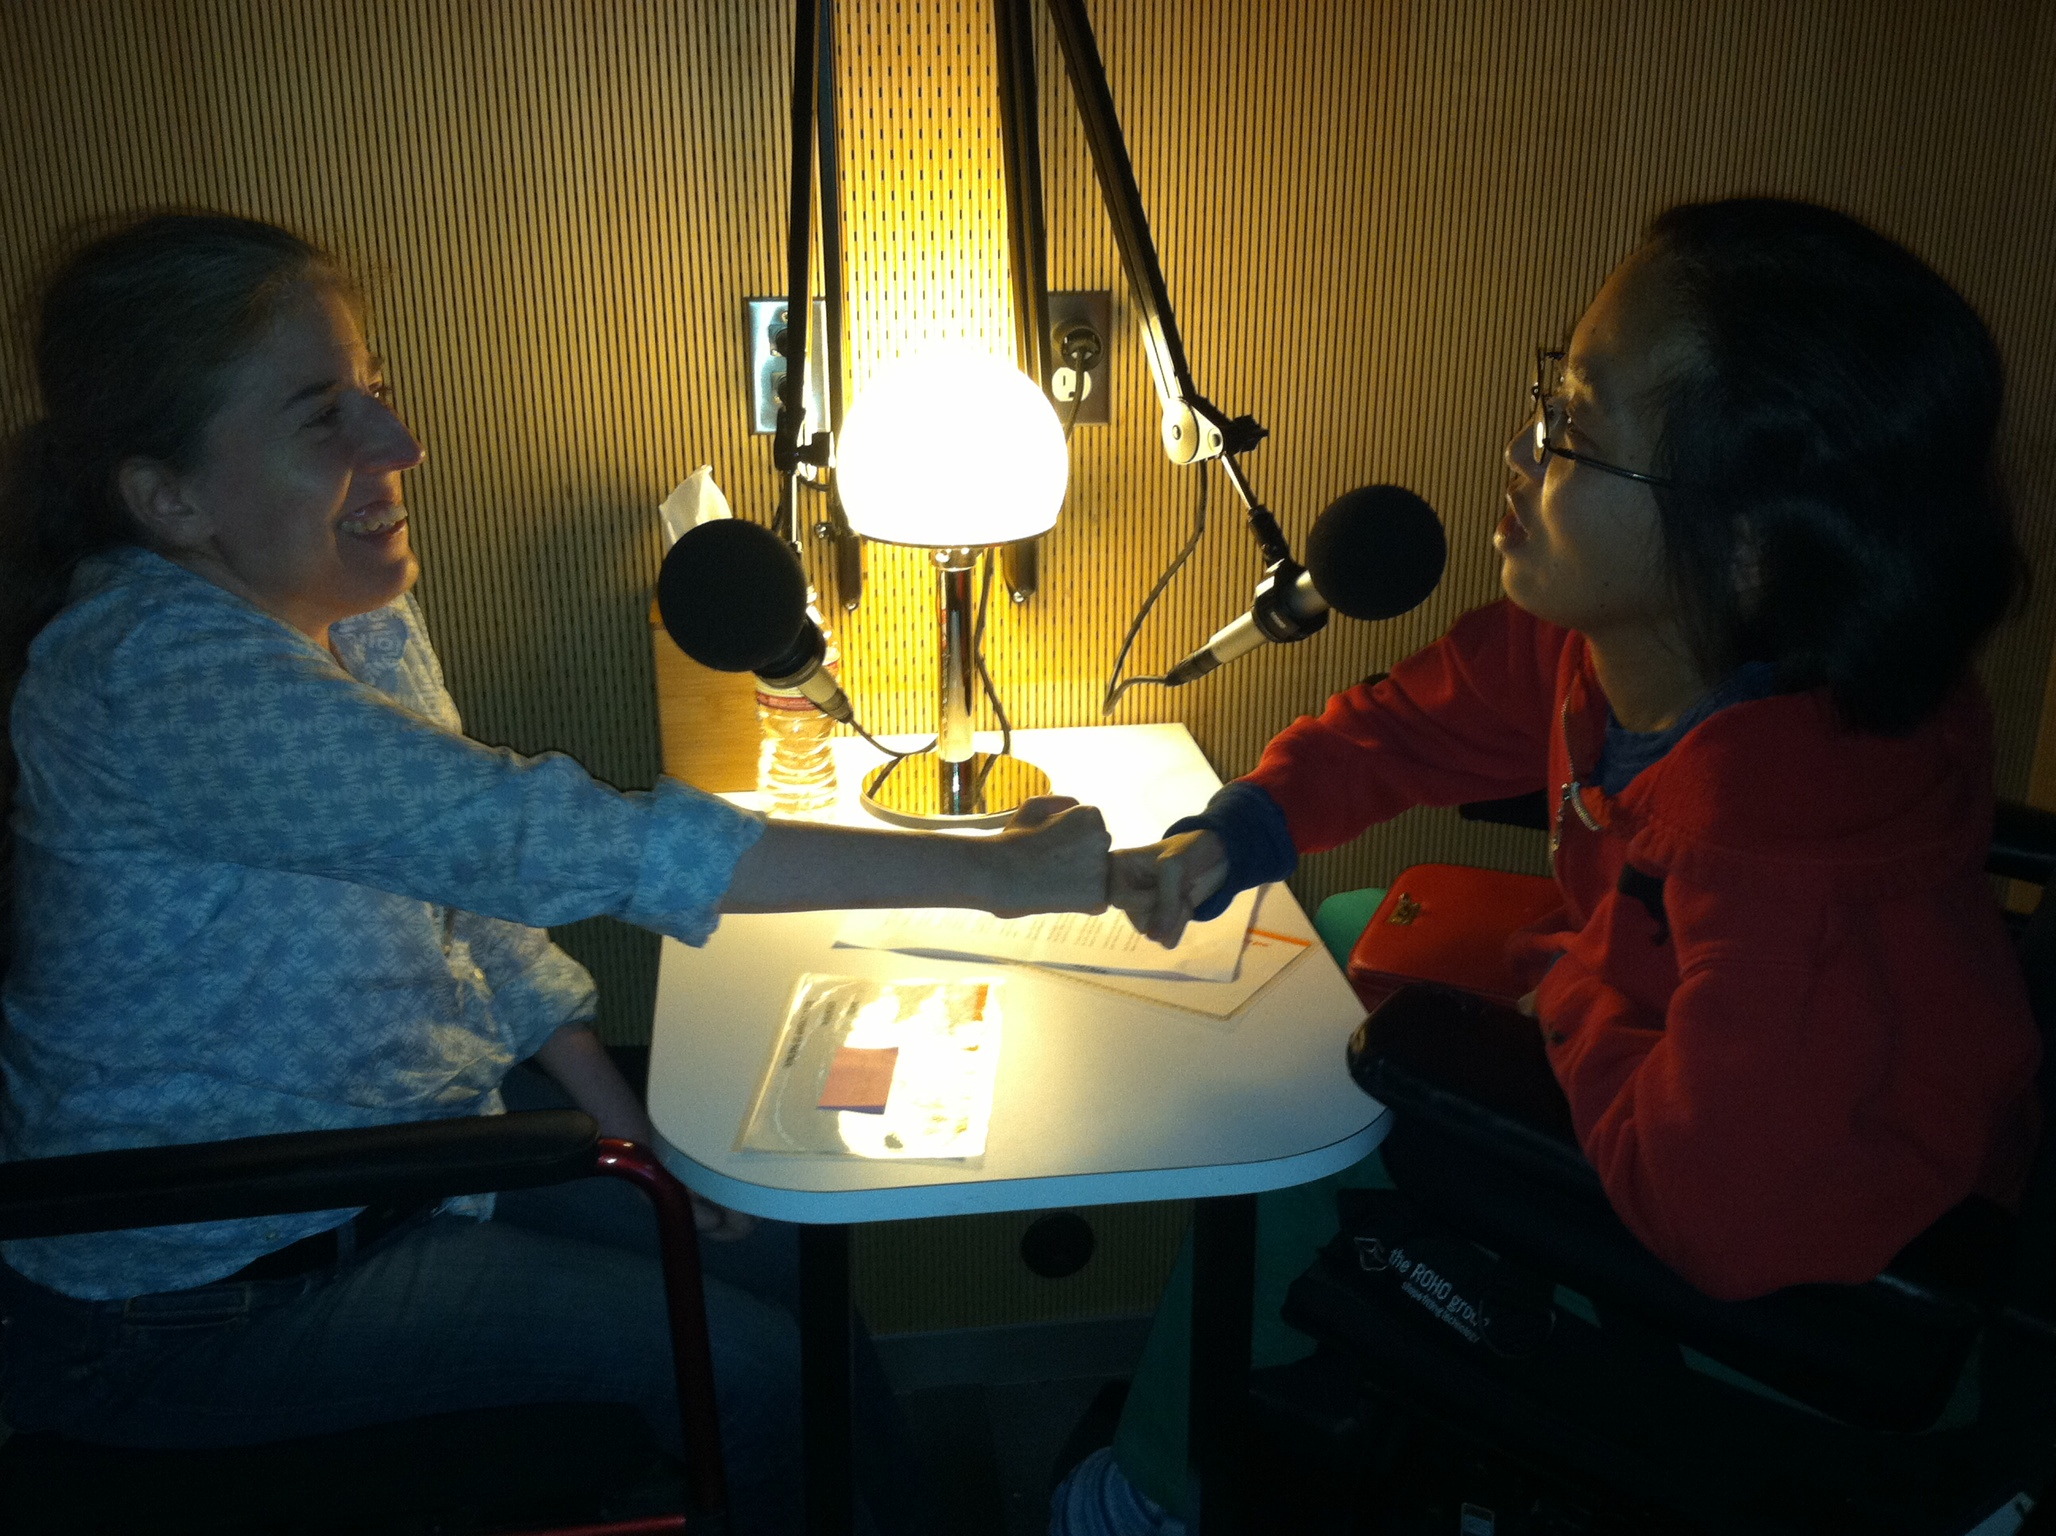 IMAGE - Fist-bumping during an interview at StoryCorps San Francisco with Ingrid Tischer (left), Director of Development, DREDF and Alice Wong (right), Head Honcho, Disability Visibility Project, 2014. Image courtesey Alice Wong, DVP.